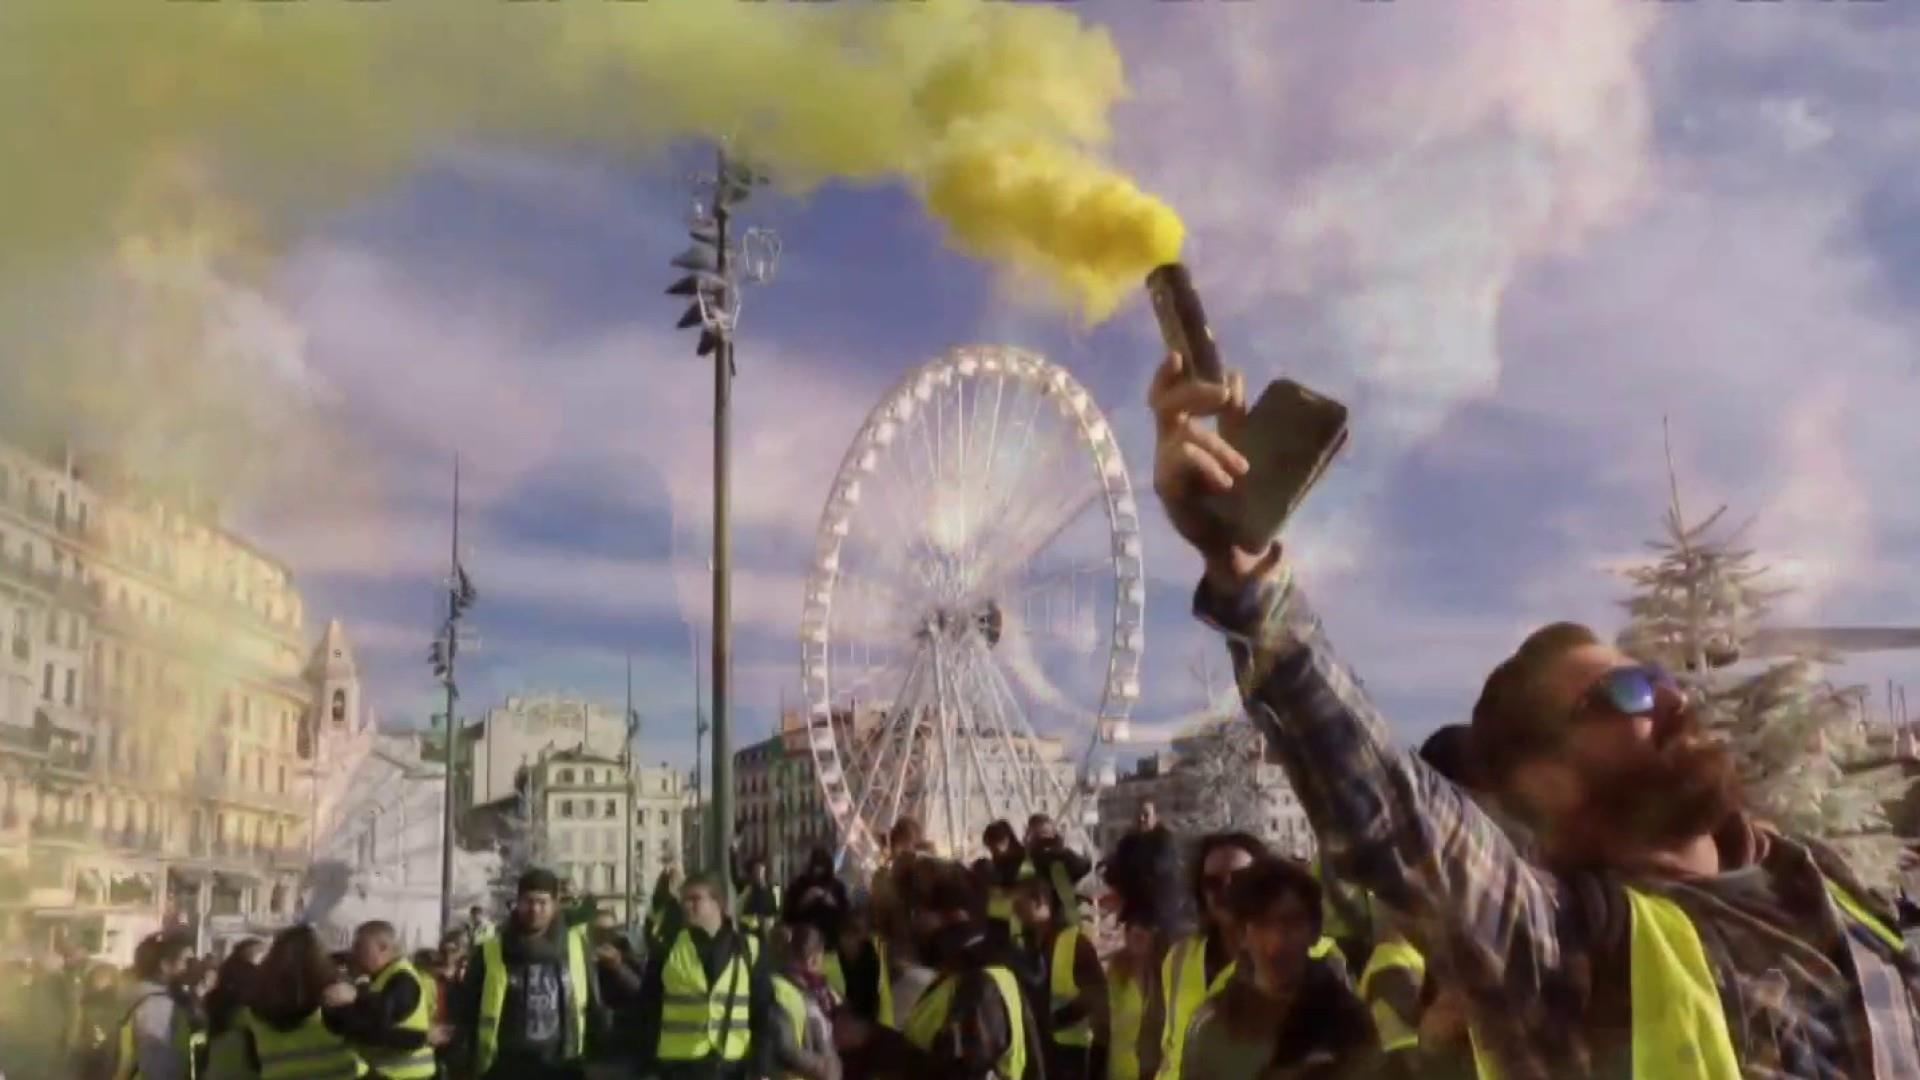 Paris riots could spur state of emergency